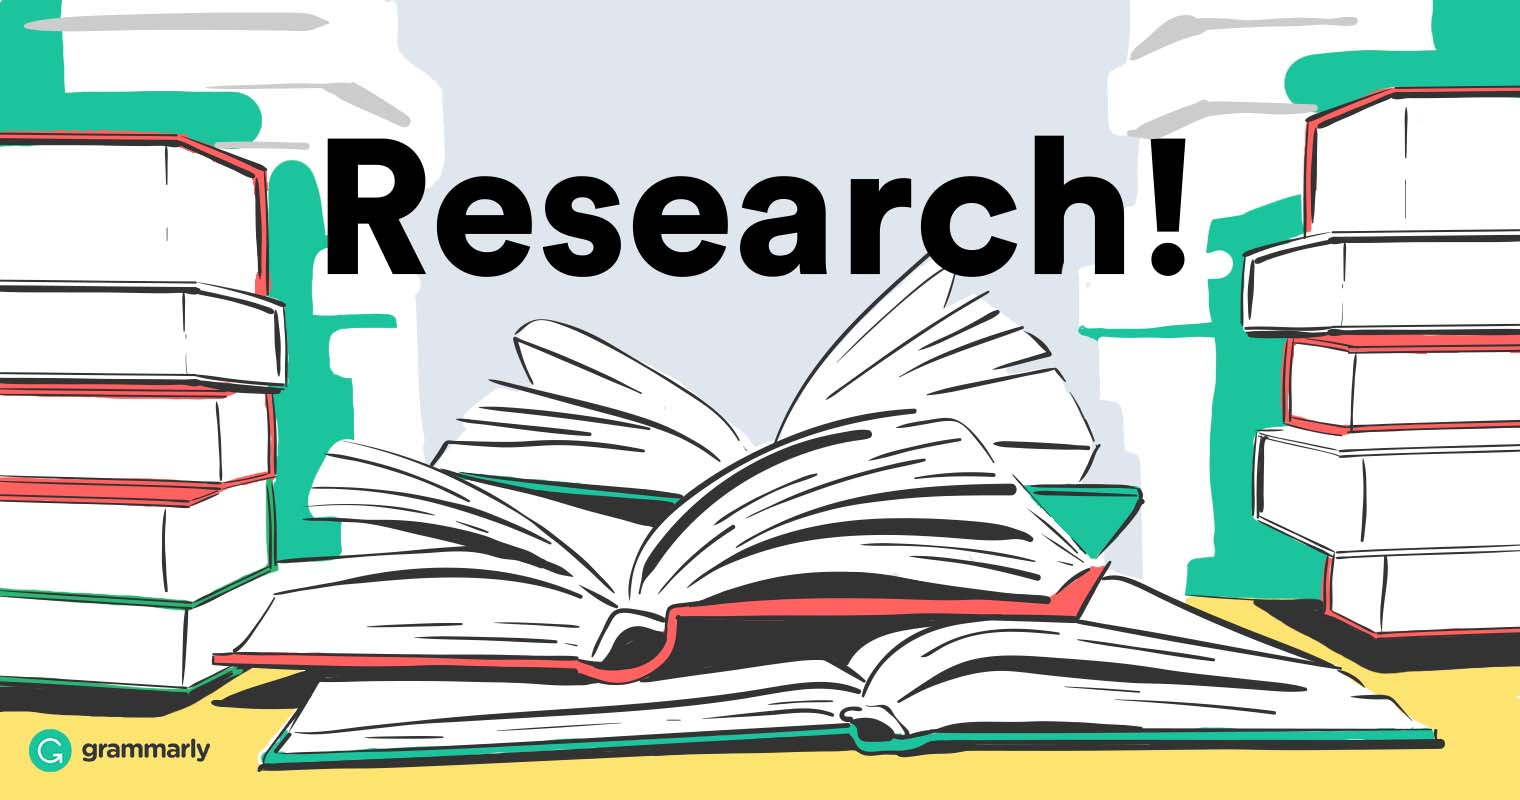 006 Research Paper Help With Beautiful Writing Full